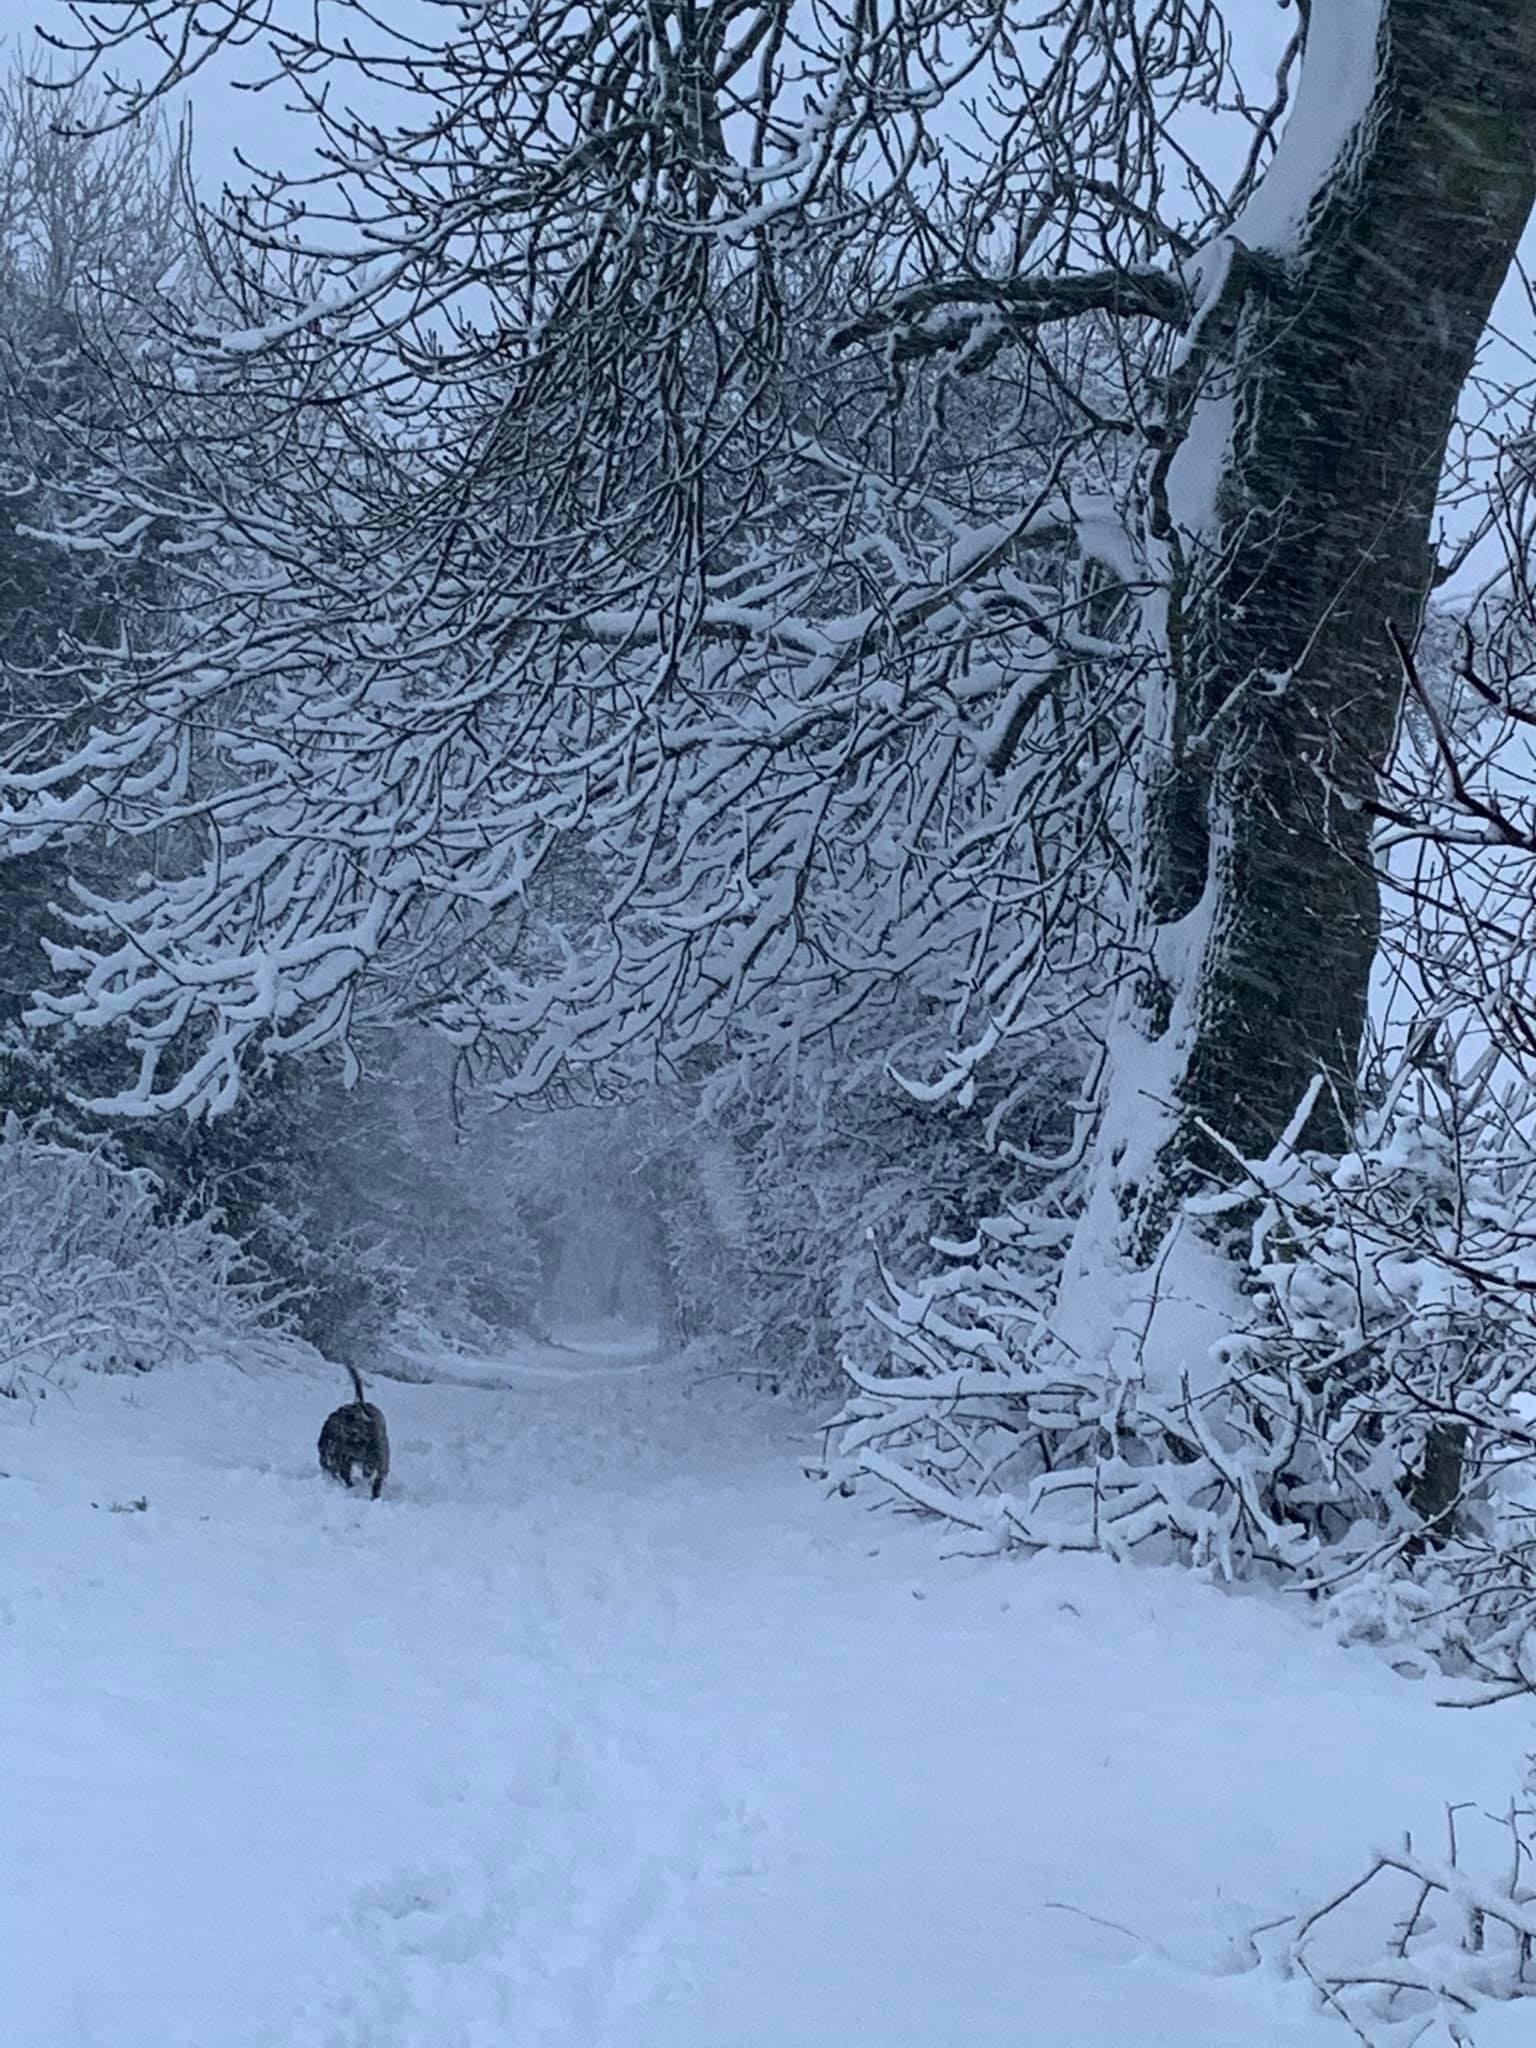 Walking the dog in the deep snow.